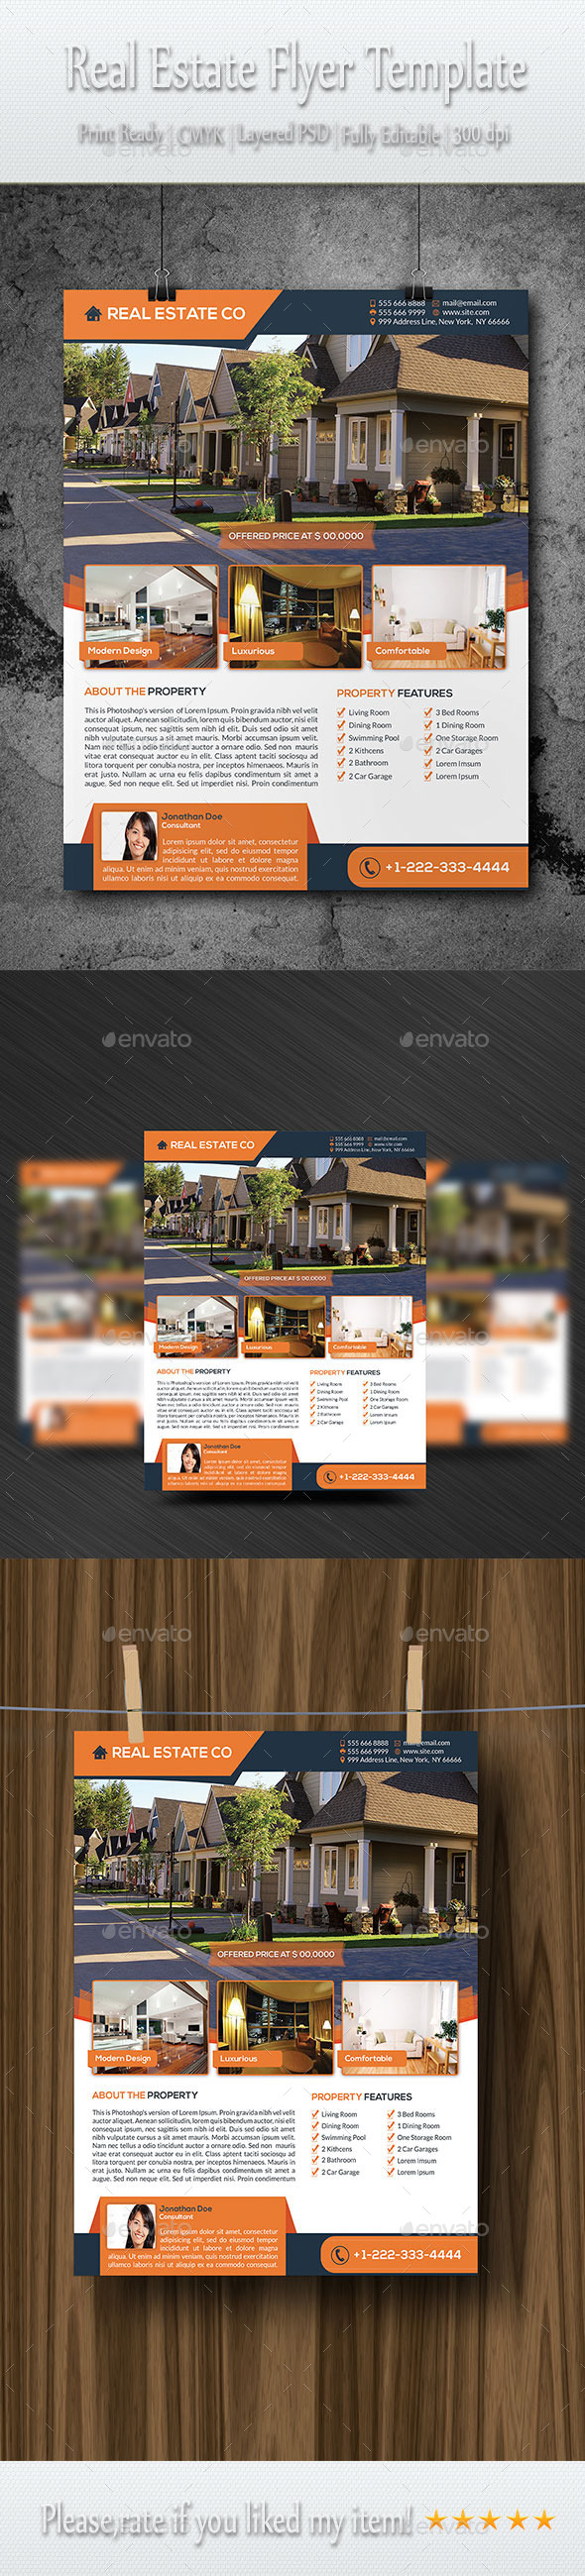 GraphicRiver Real Estate Flyer Template 8928465